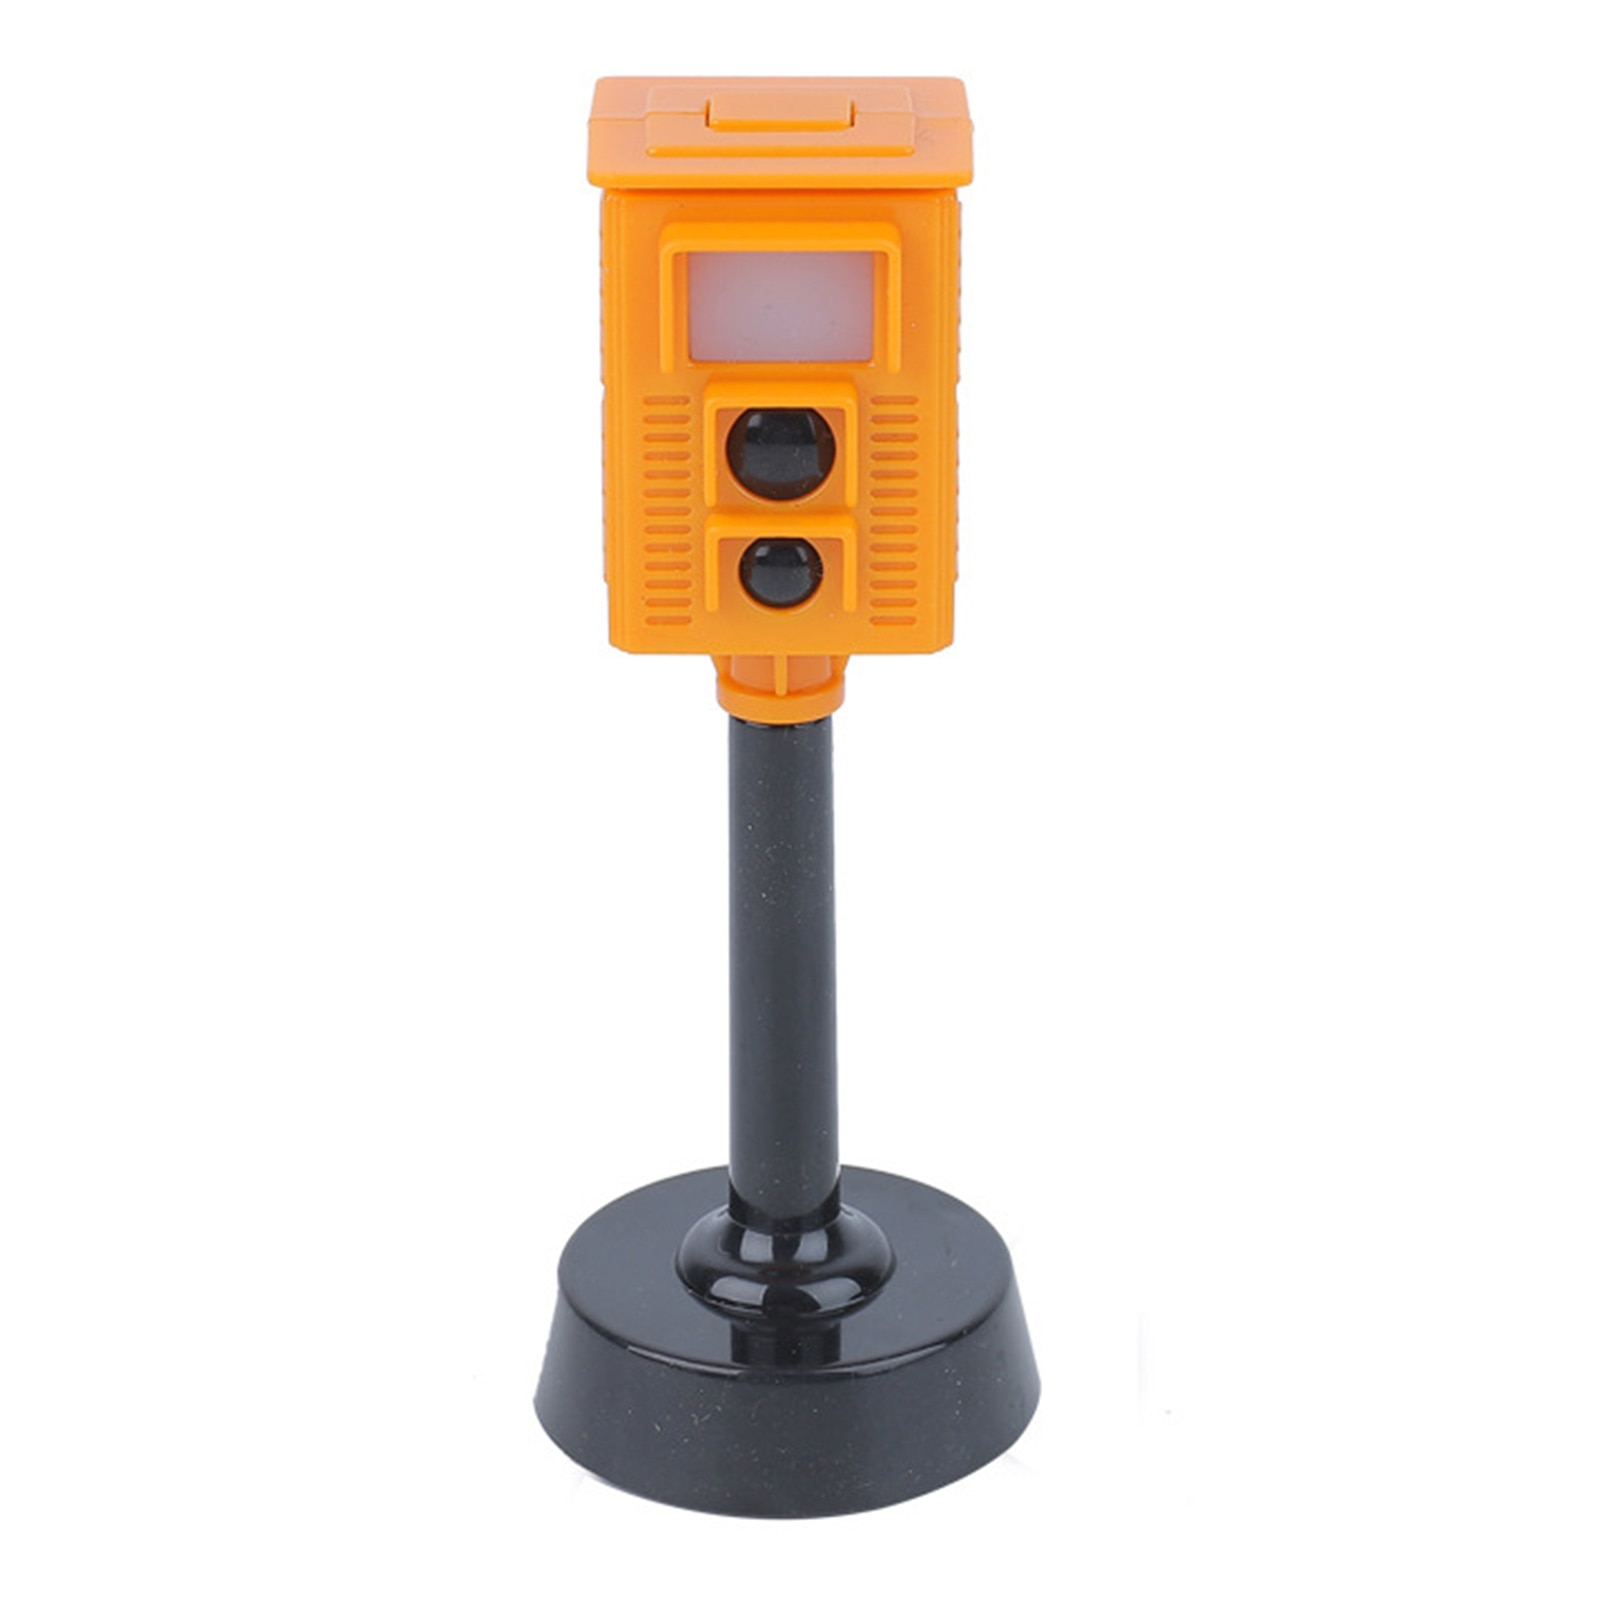 Kids Traffic Toys Traffic Light Traffic Enforcement Camera Toy For Children Early Learning Tool Montessori Toys недорого